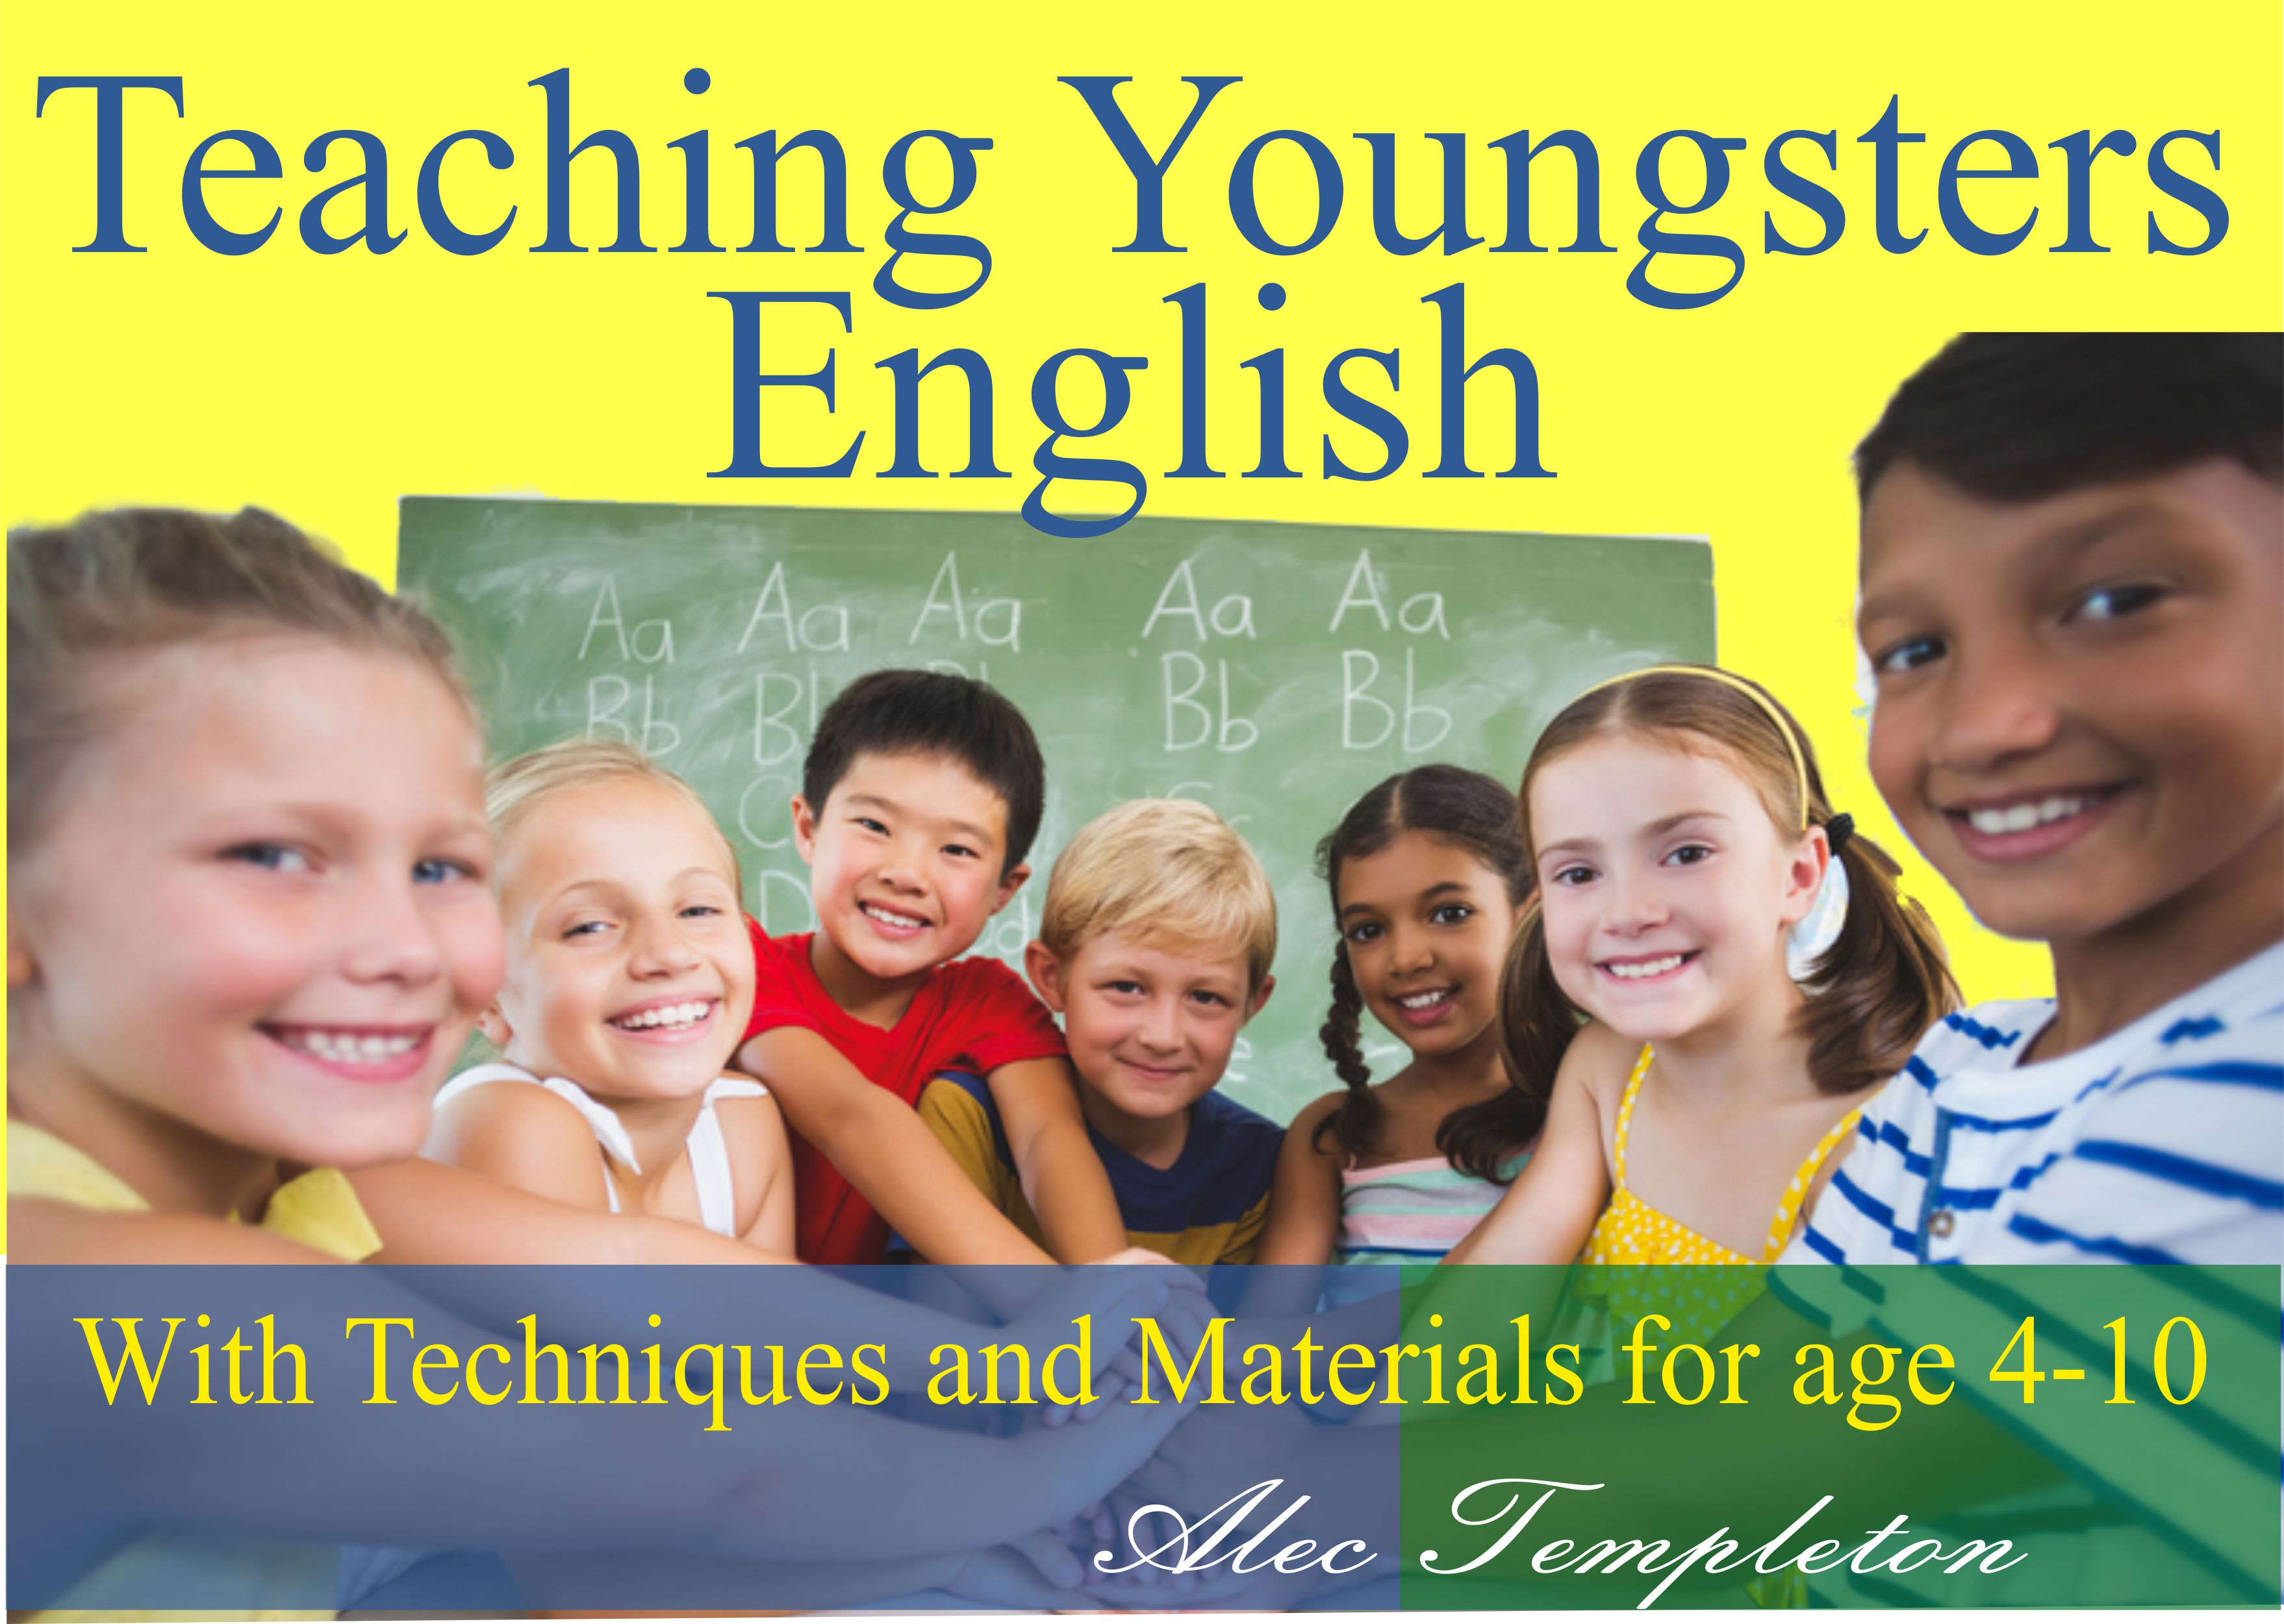 Book Cover: Teaching Youngsters English, by Alec Templeton